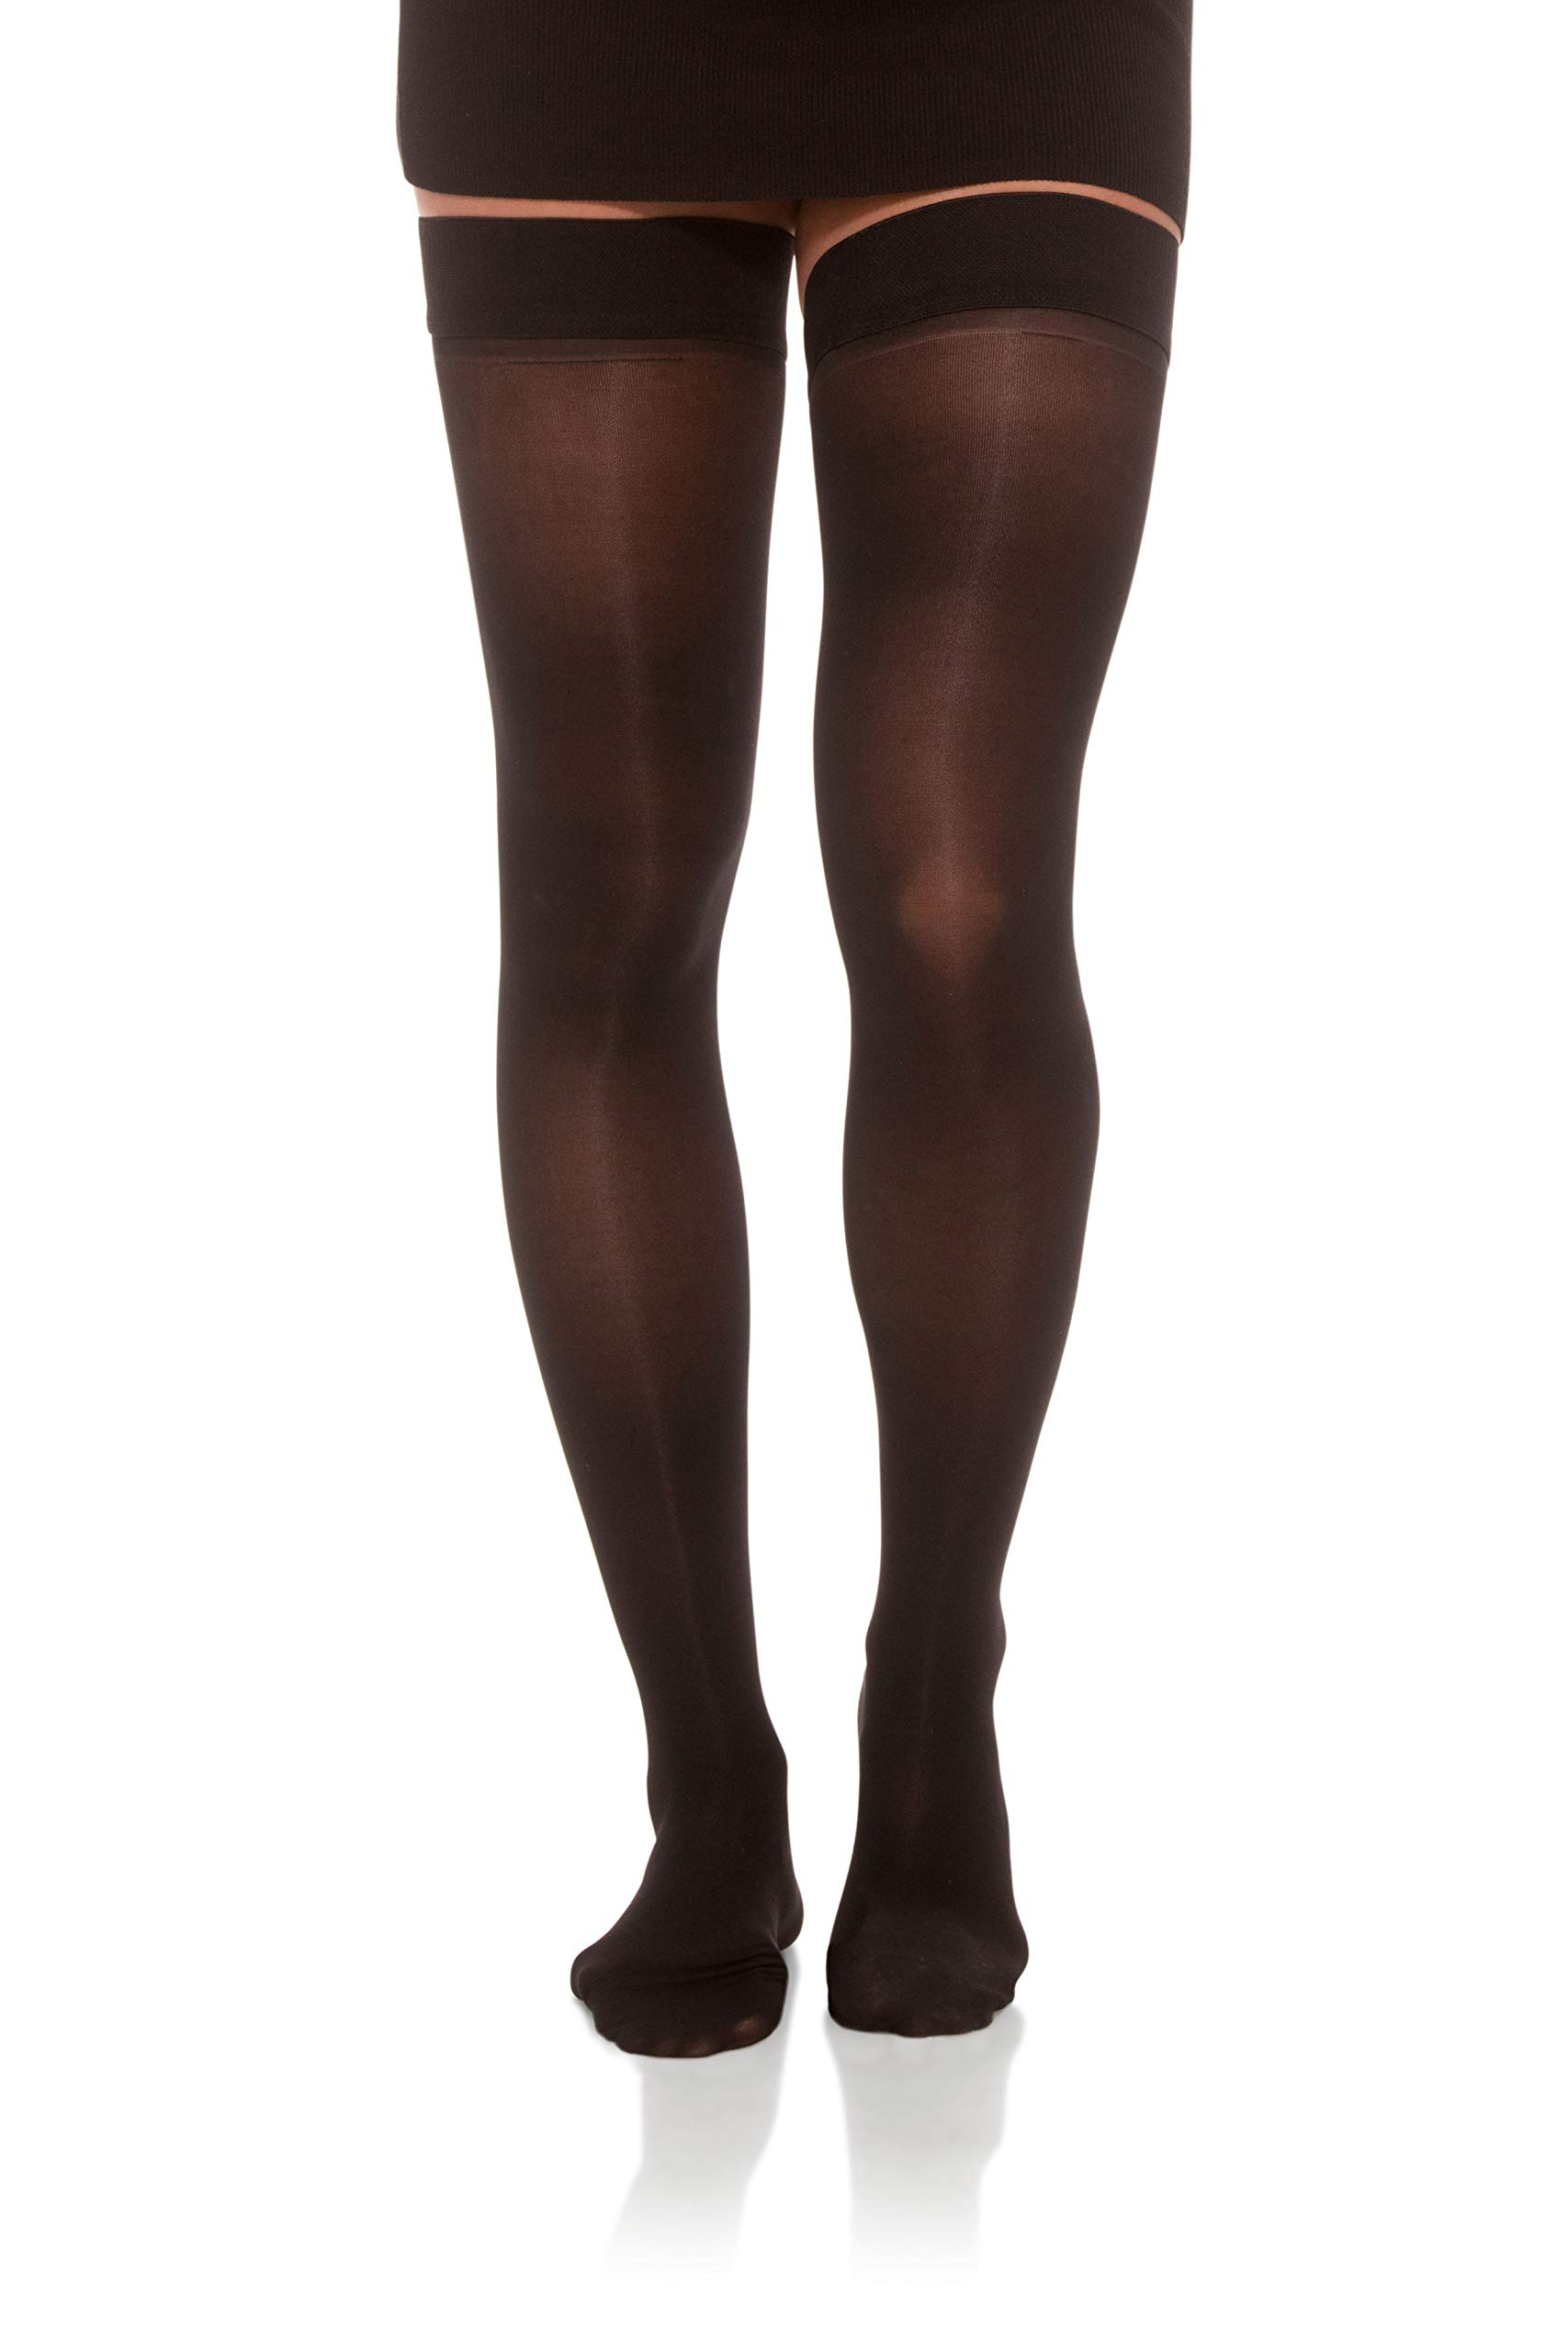 Jomi Compression, Unisex, Thigh High Stockings Collection, 8-15mmHg Sheer Closed Toe 045 (Large, Black) by JOMI COMPRESSION